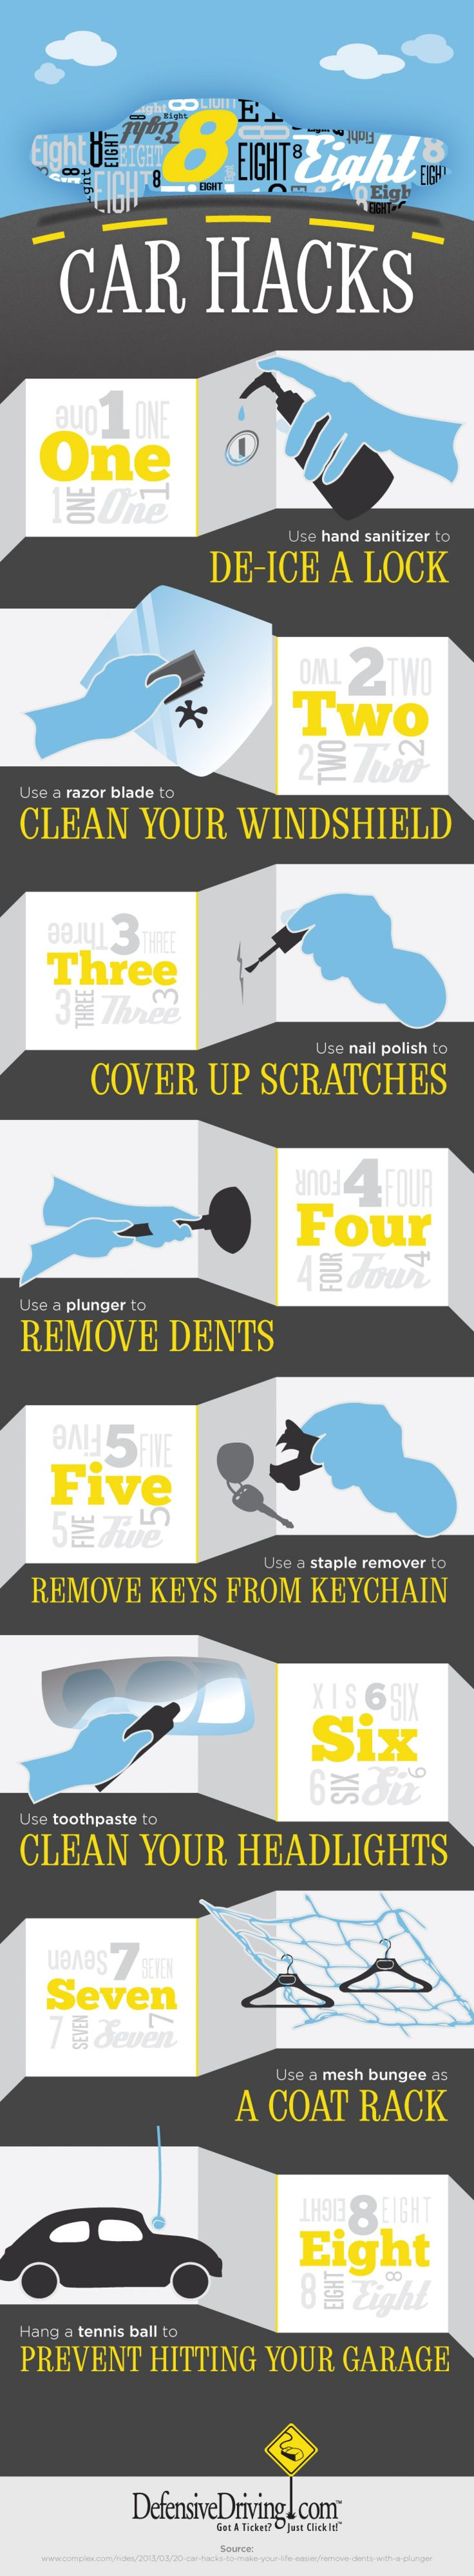 8 Car Hacks That Are Sure to Come in Handy #Infographic